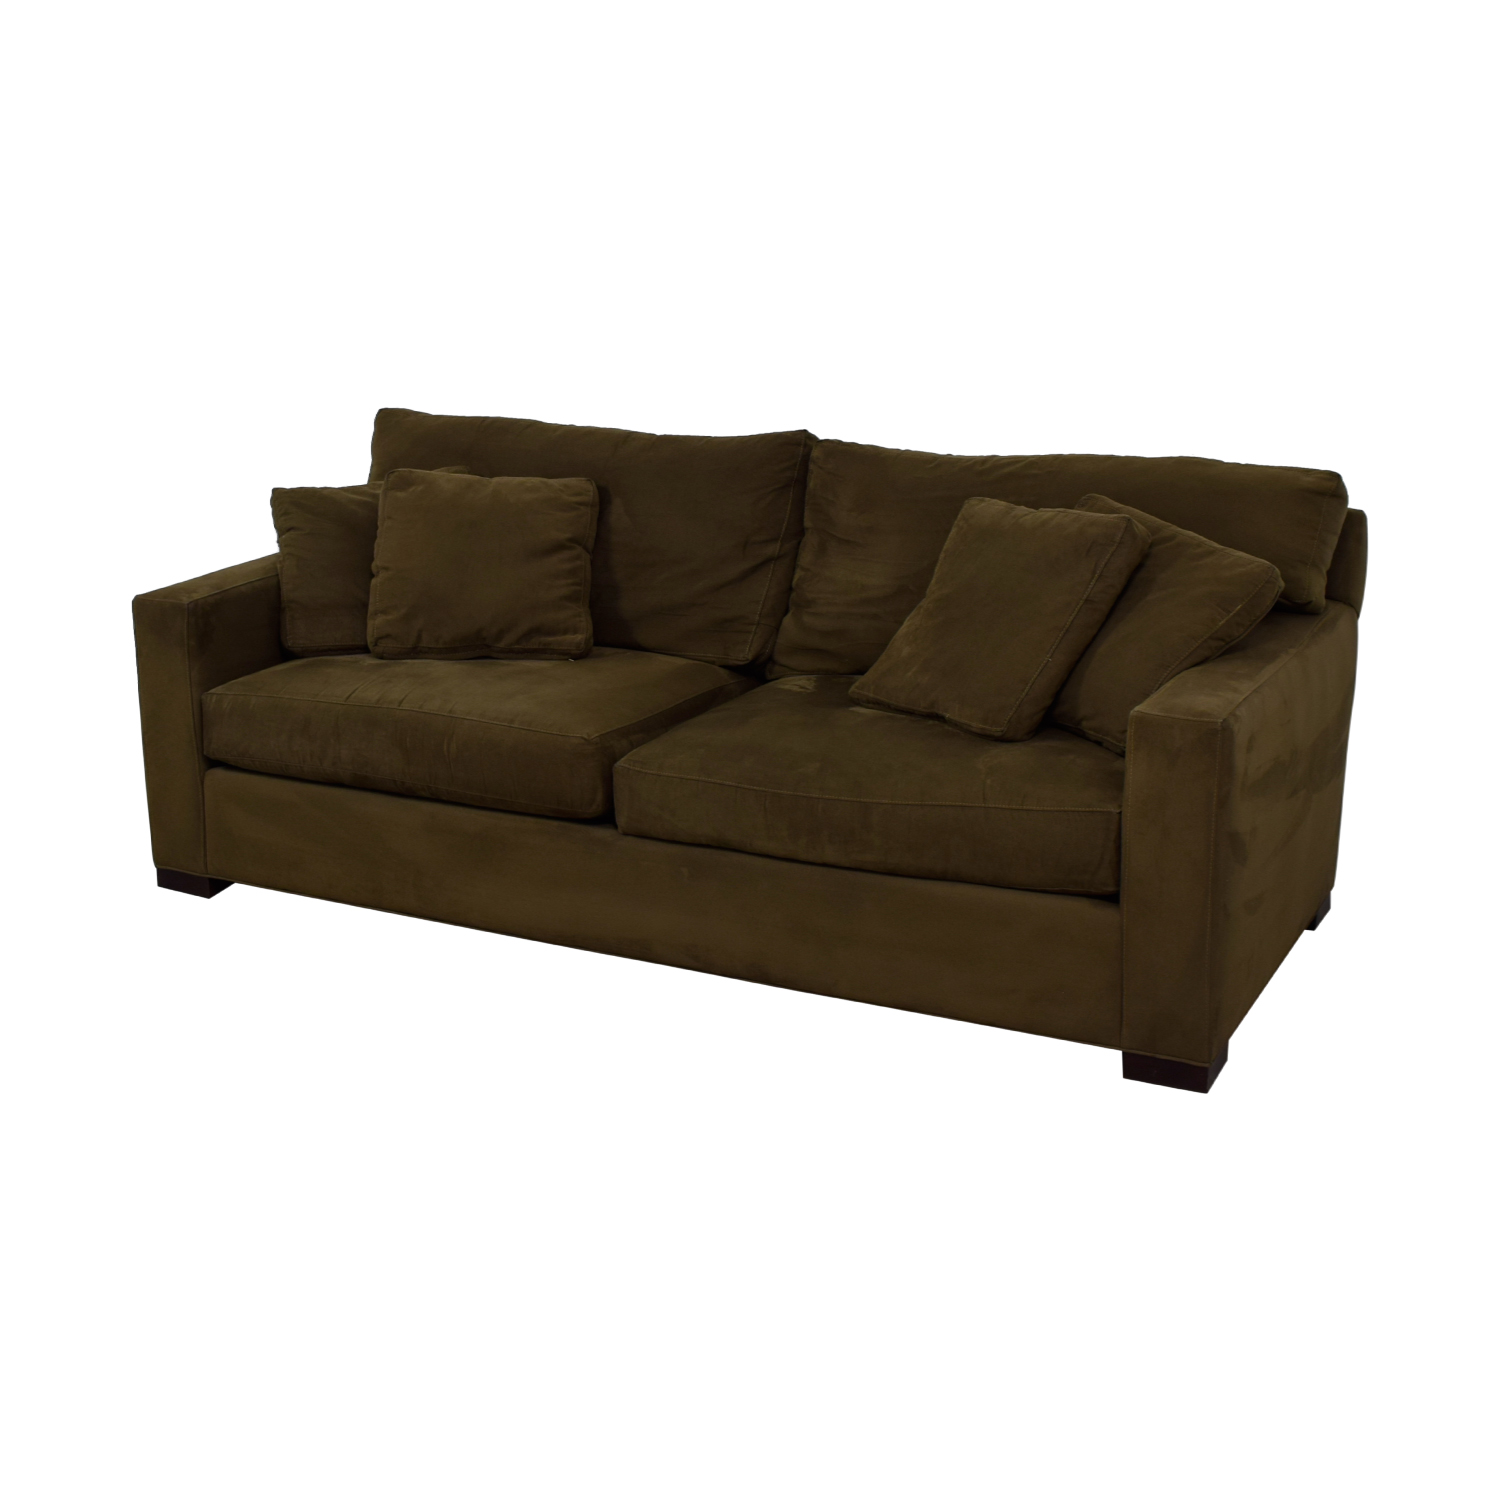 Beau ... Crate U0026 Barrel Crate U0026 Barrel Axis Sofa Coupon ...